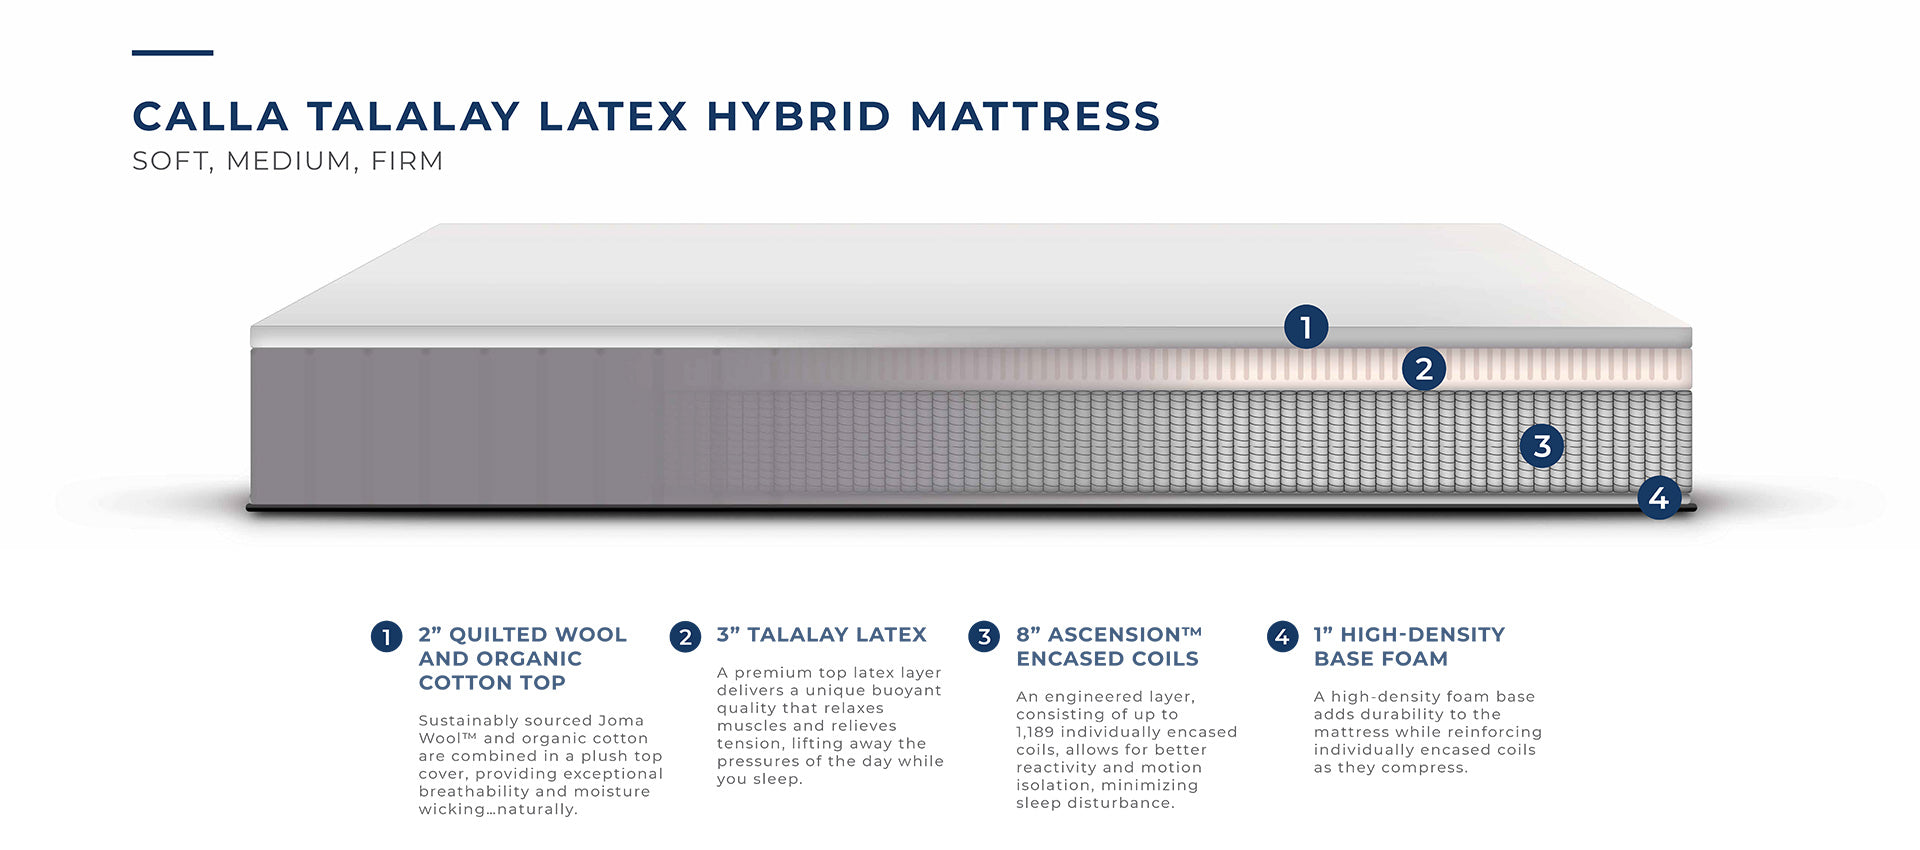 Calla Talalay Latex Hybrid 14″ Mattress